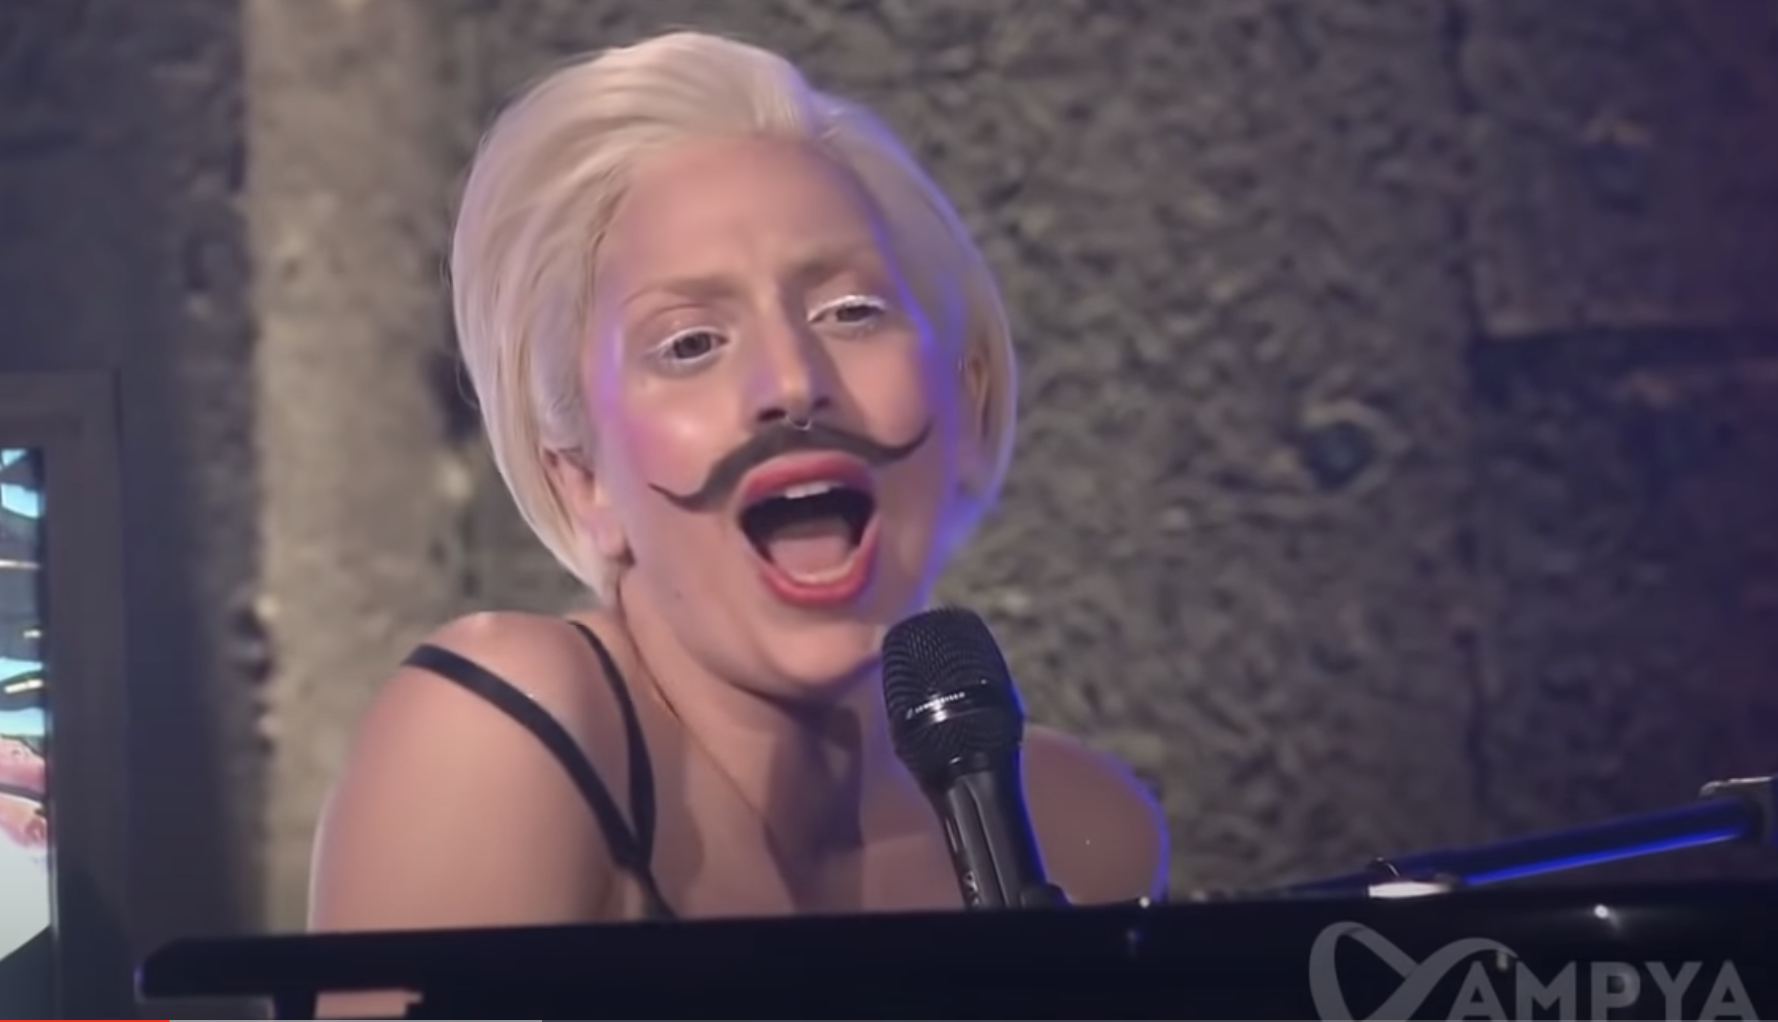 Gaga in white eyeliner and a fake handlebar mustache while at the piano singing Gypsy